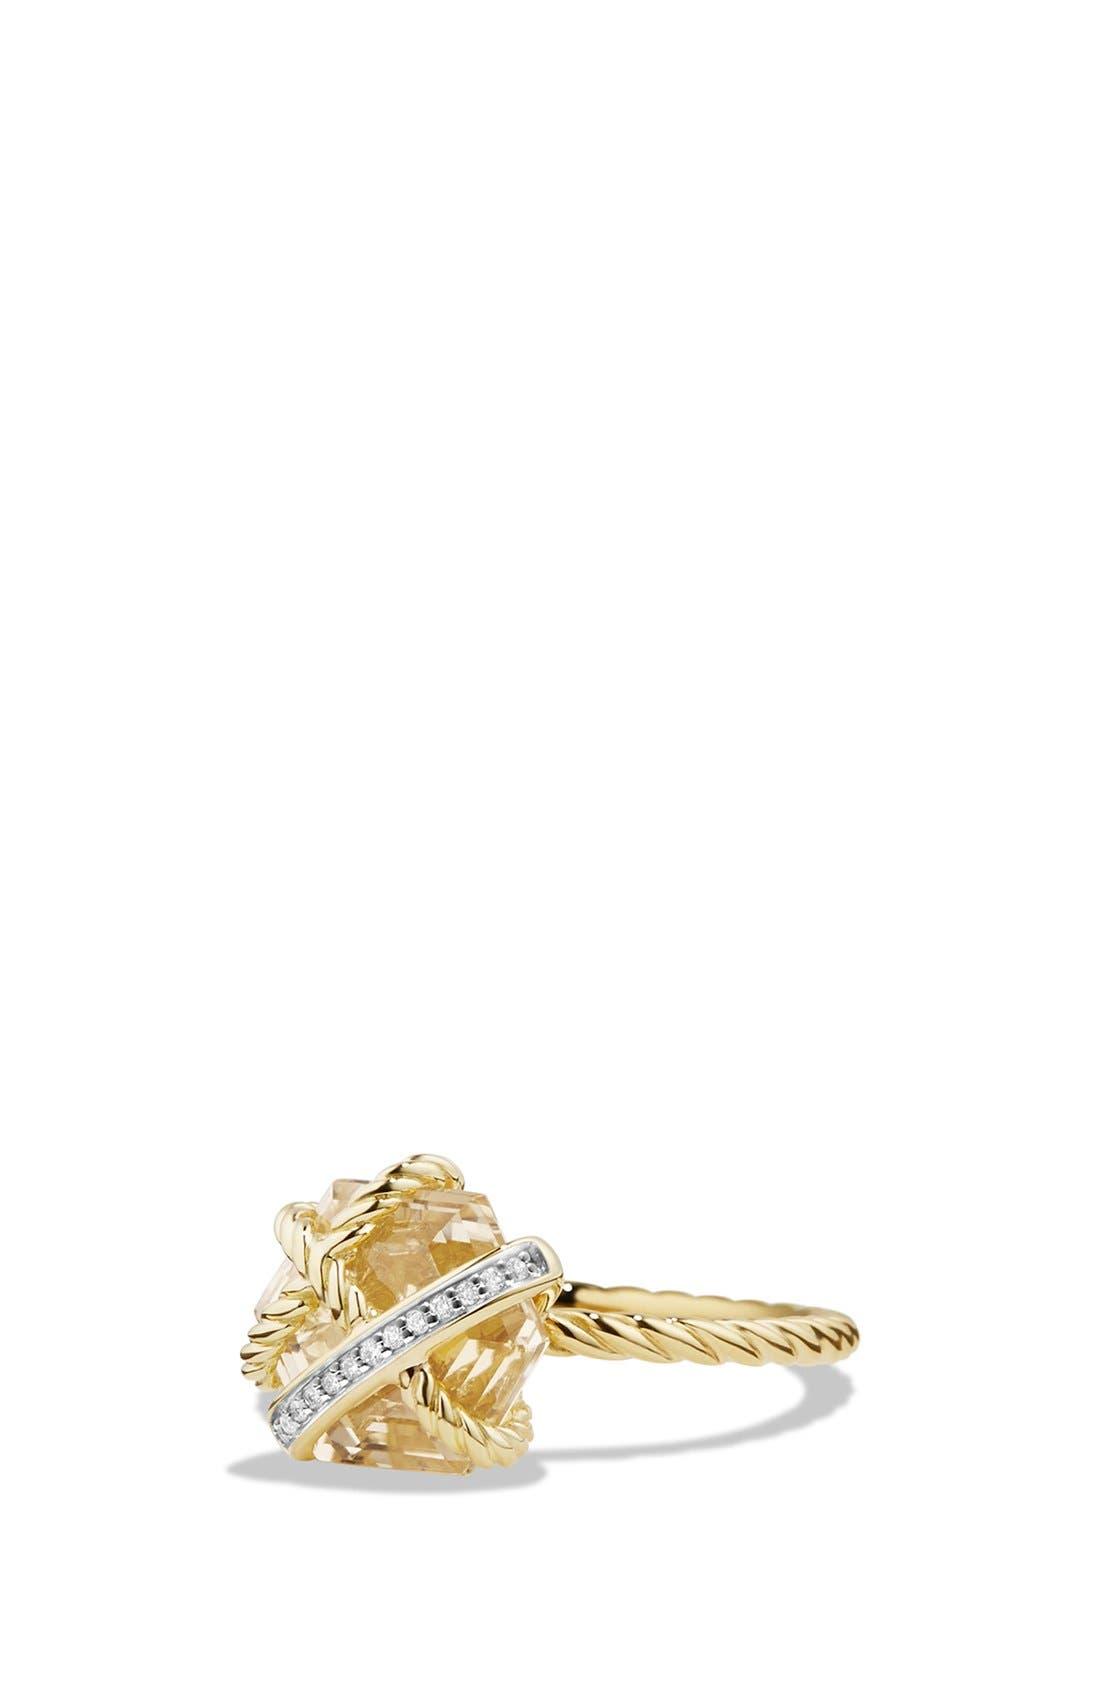 Alternate Image 1 Selected - David Yurman 'Cable Wrap' Ring with Diamonds